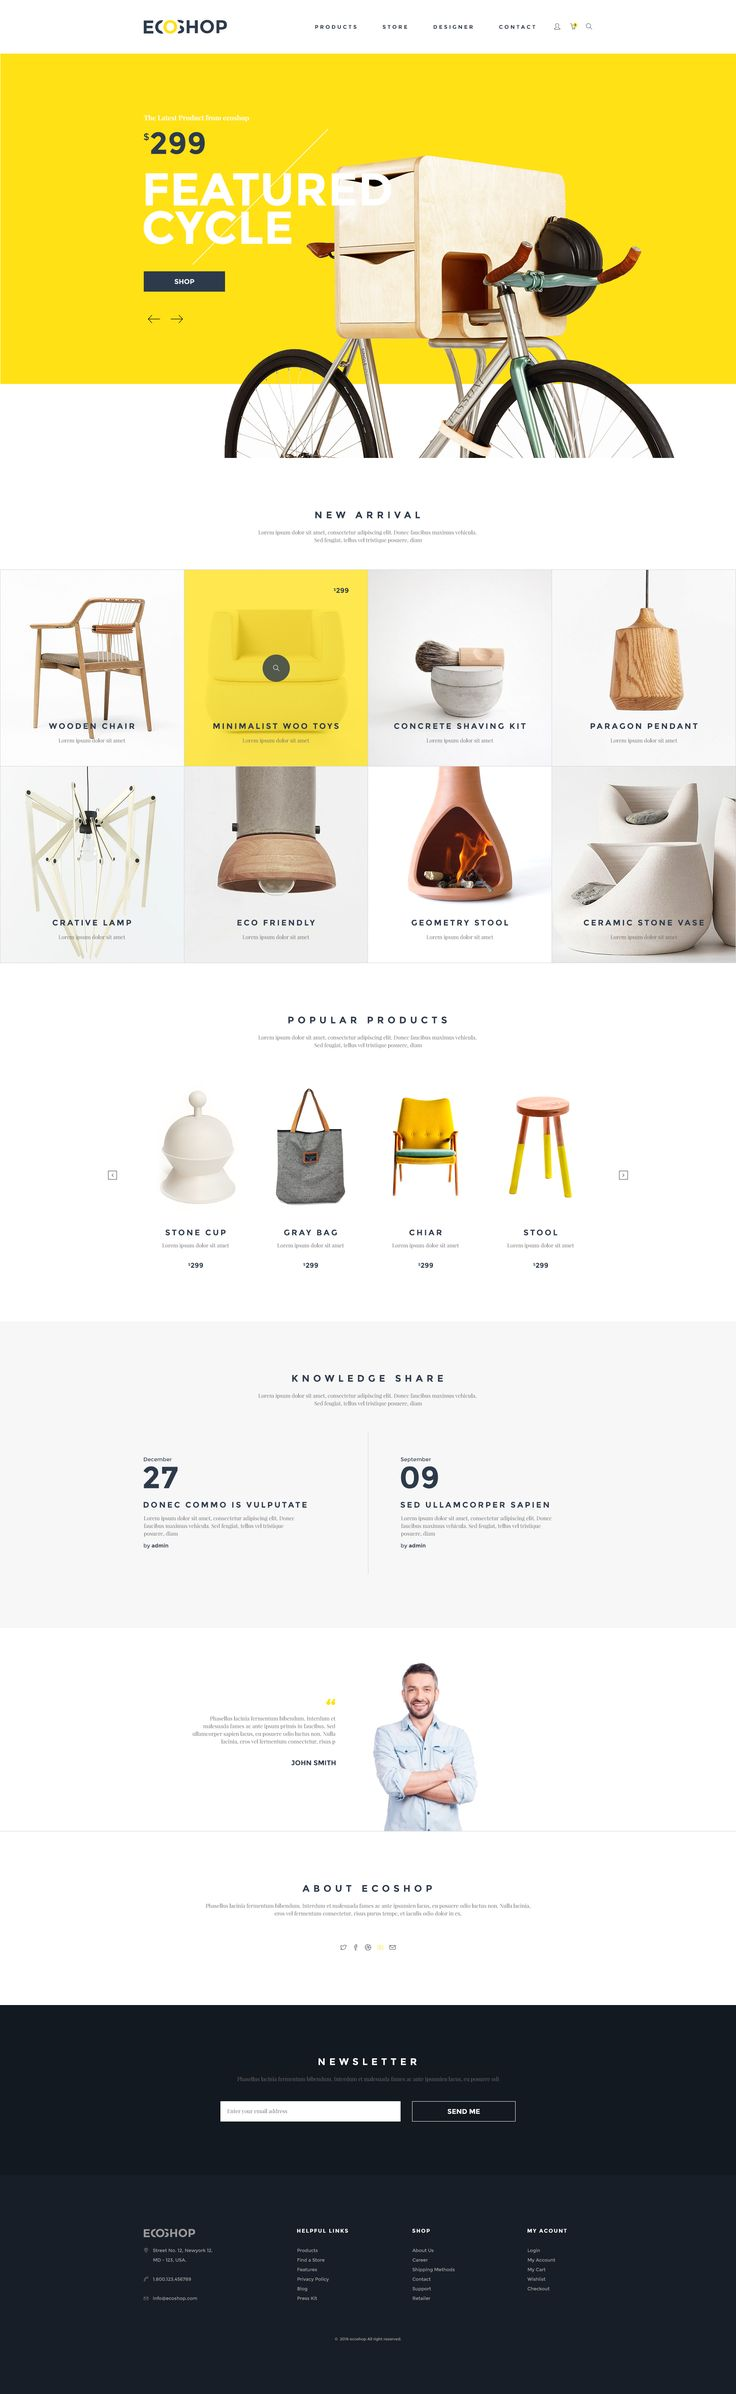 ECOSHOP - Multipurpose eCommerce PSD Template - PSD Templates